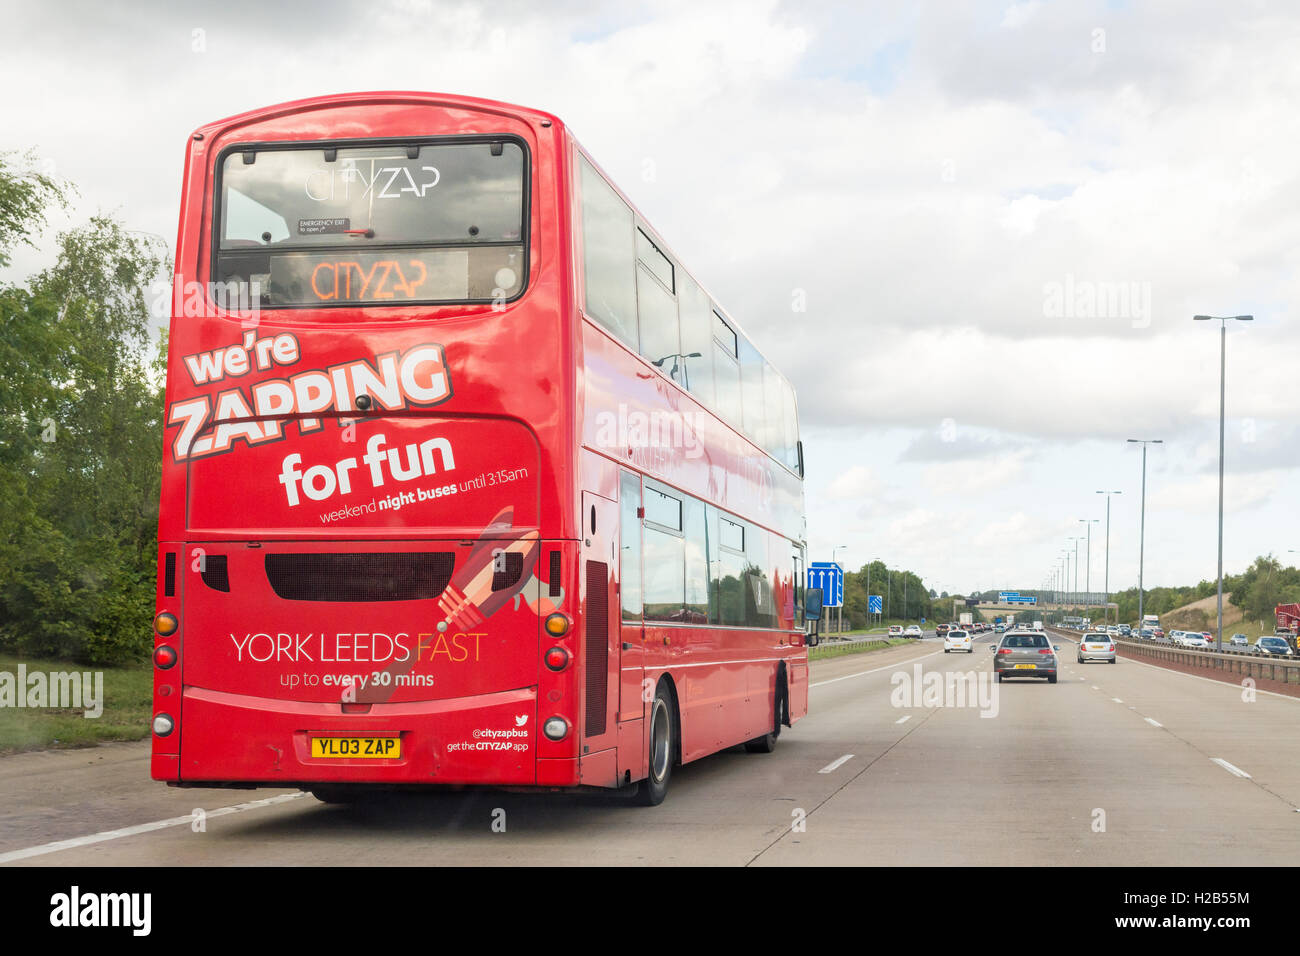 CityZap double decker bus providing a high speed service between Leeds and York - Stock Image